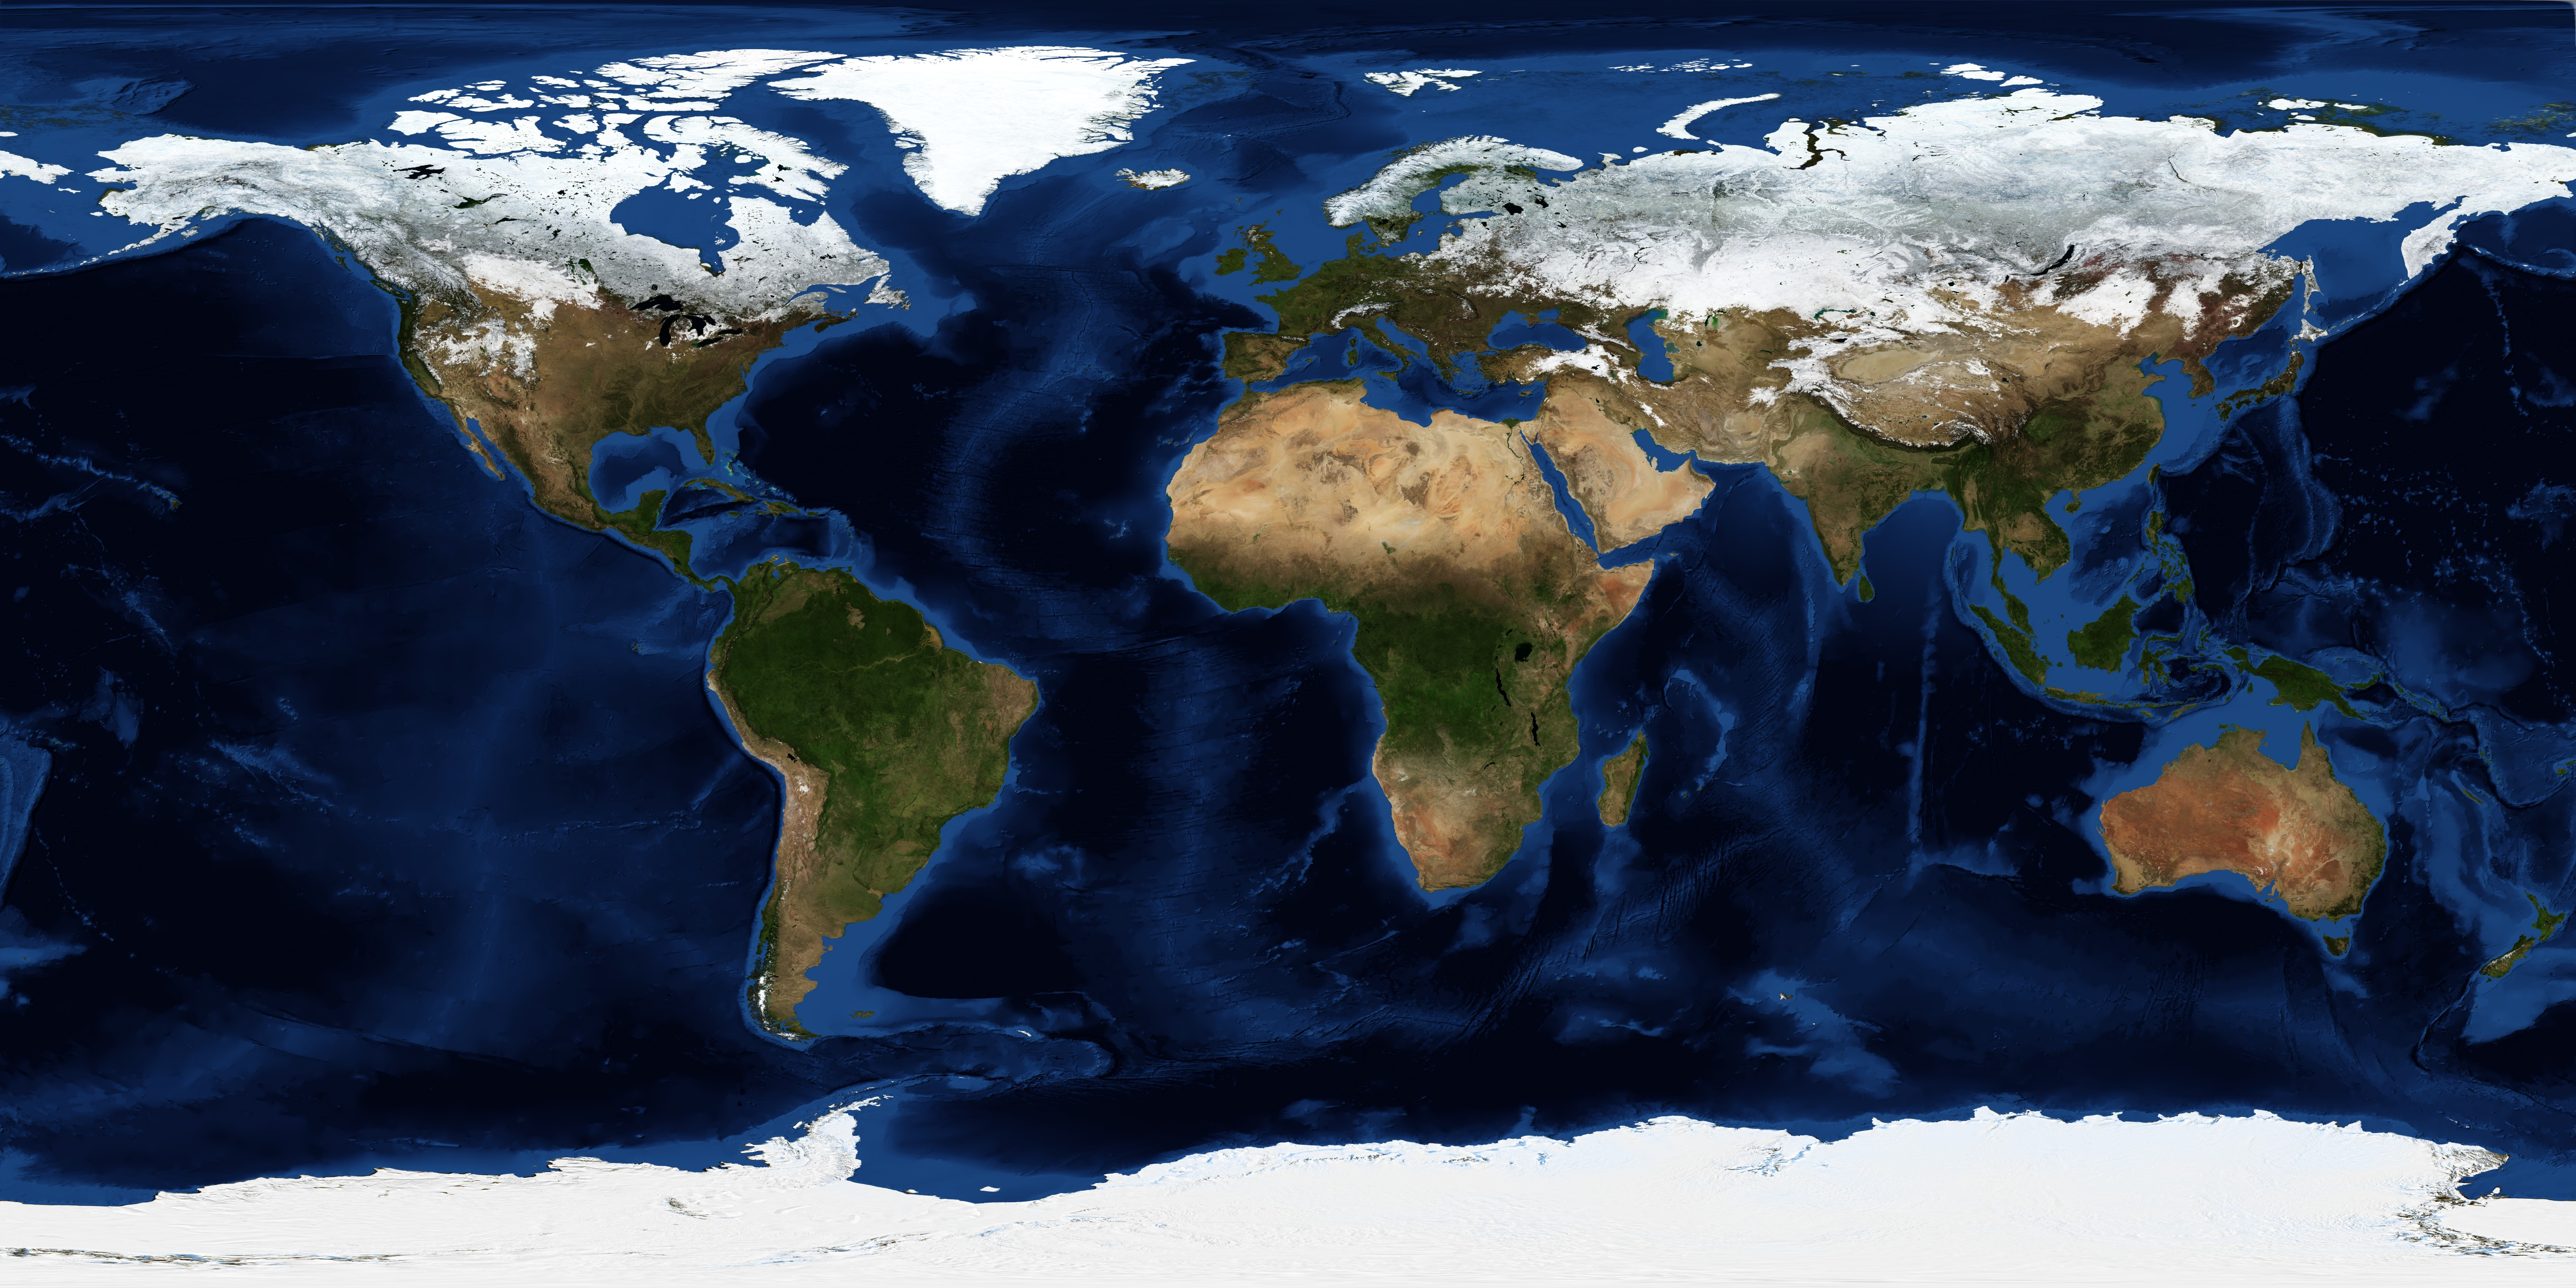 December, Blue Marble Next Generation w/ Topography and Bathymetry - related image preview